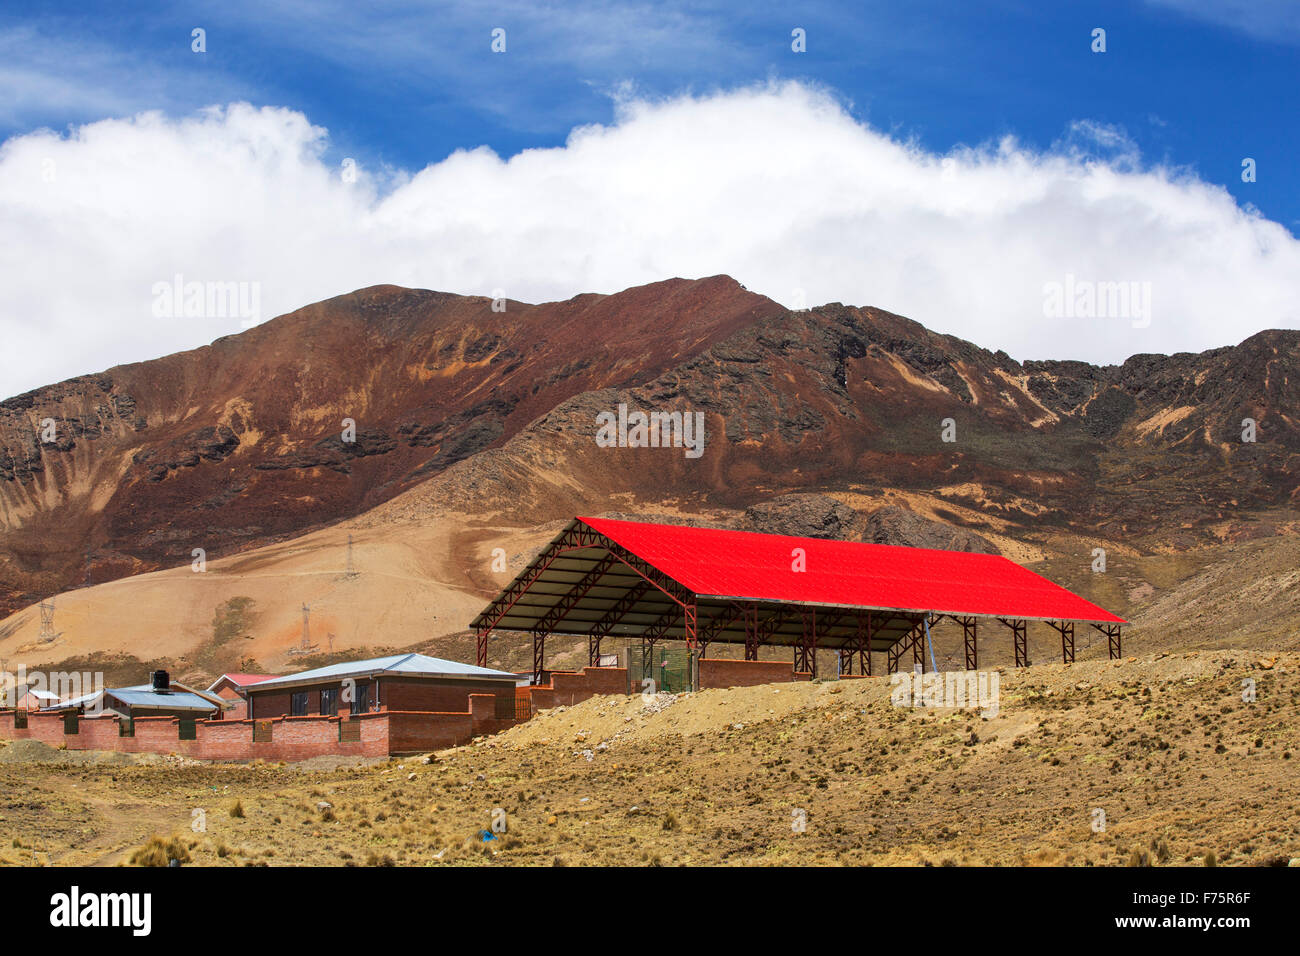 Looking over the Altiplano to a ranch near La Paz in Bolivia. - Stock Image